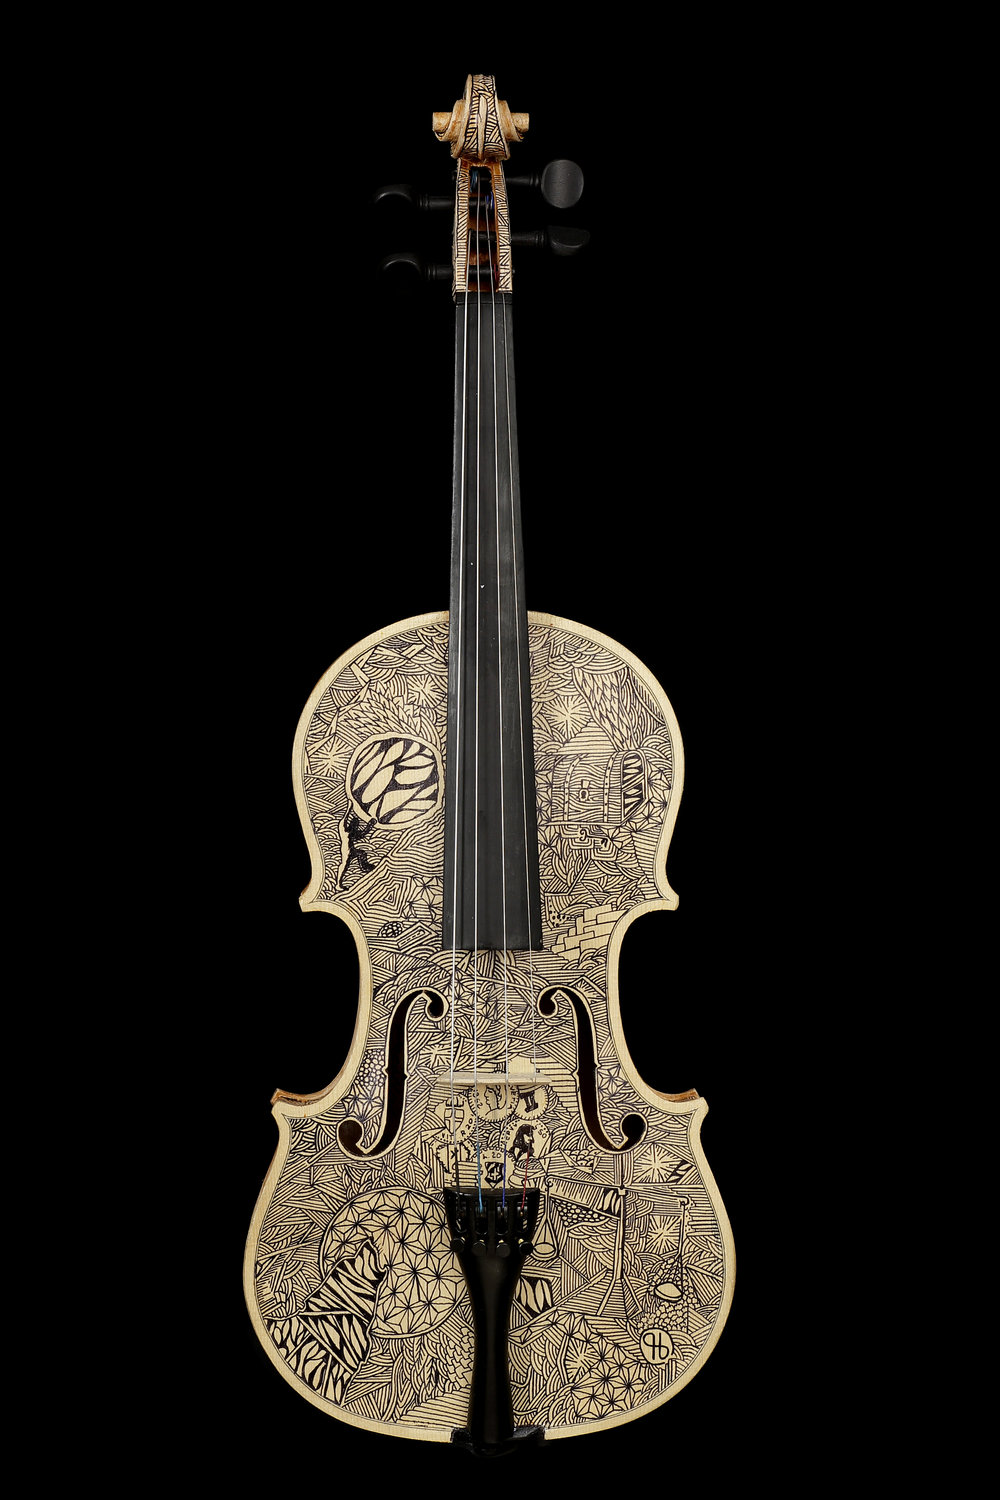 Greed Violin size 4/4